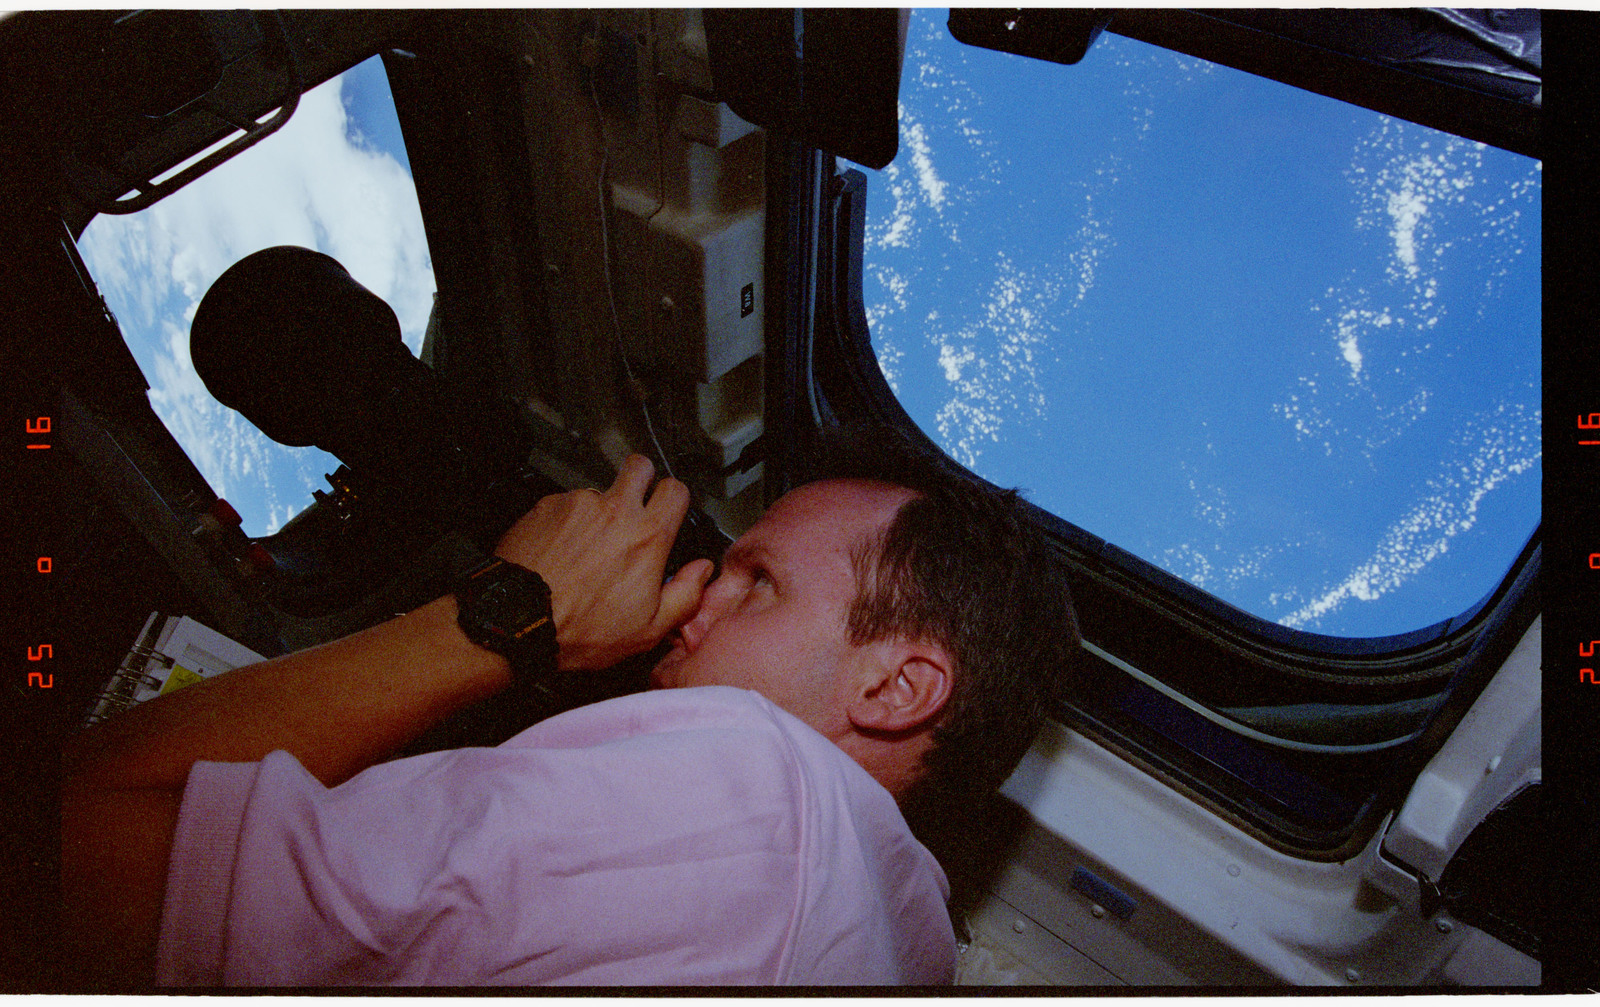 STS068-41-019 - STS-068 - STS-68 crew on orbiter flight deck